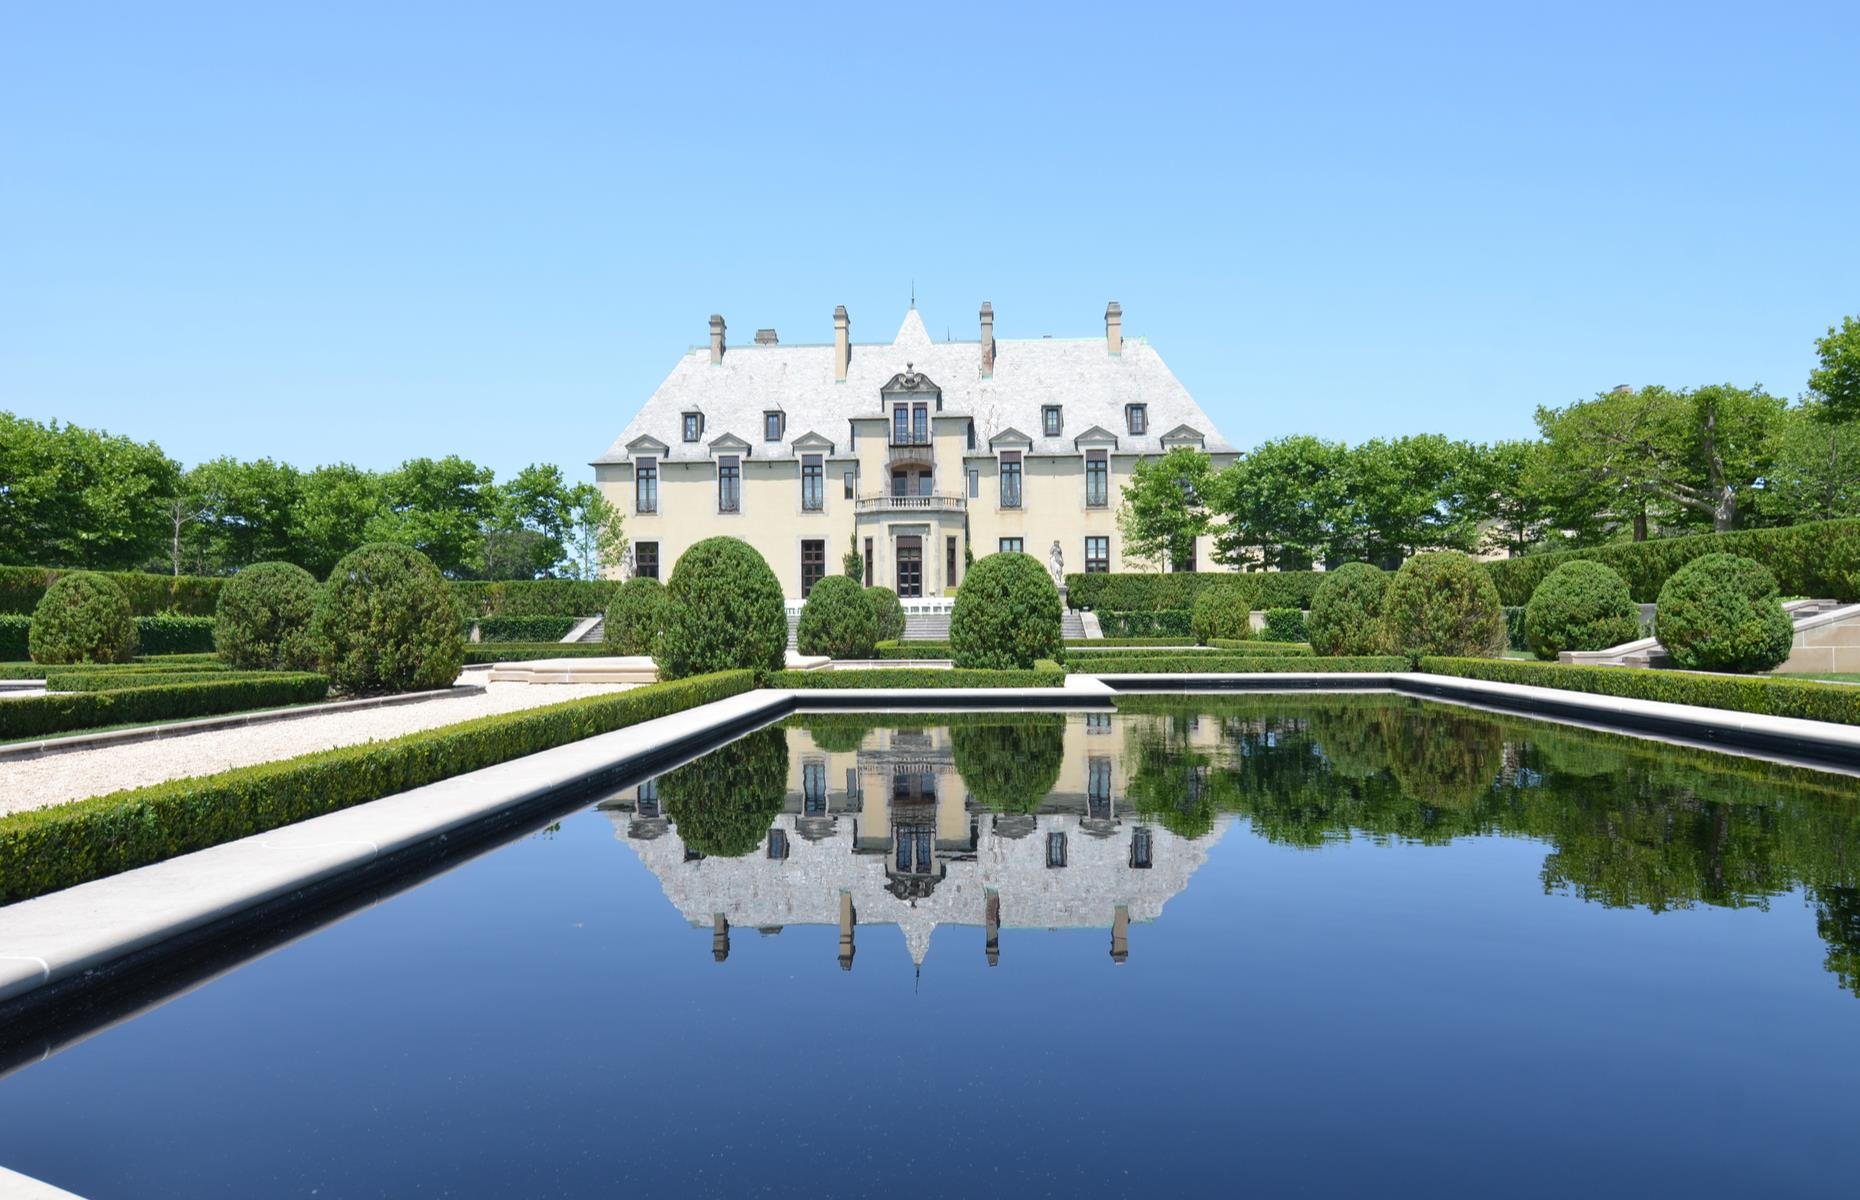 Slide 28 of 53: Oheka Castle, in Long Island, is certainly a handsome mansion. But it's the stories surrounding the mansion, built between 1914 and 1919, that really enchant. The second-largest private residence in the US (after the Biltmore House in Asheville, North Carolina), it's said to be the inspiration behind the glitzy manor in F. Scott Fitzgerald's novel The Great Gatsby. It's also featured in diverse productions from Citizen Kane to a Taylor Swift music video.